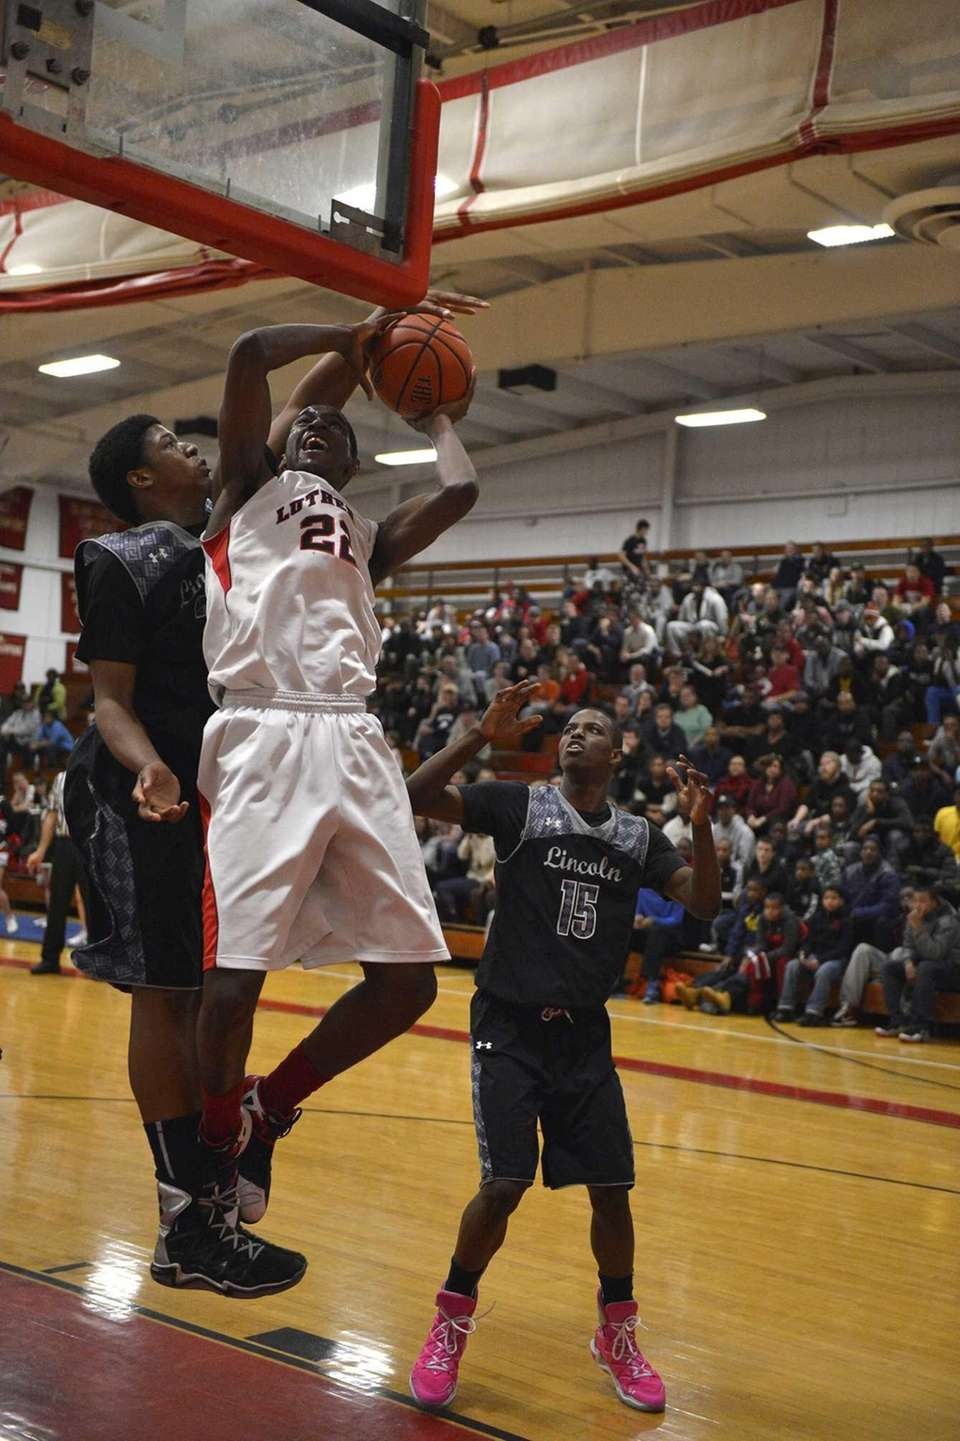 Lutheran forward/center Kentan Facey goes up for a